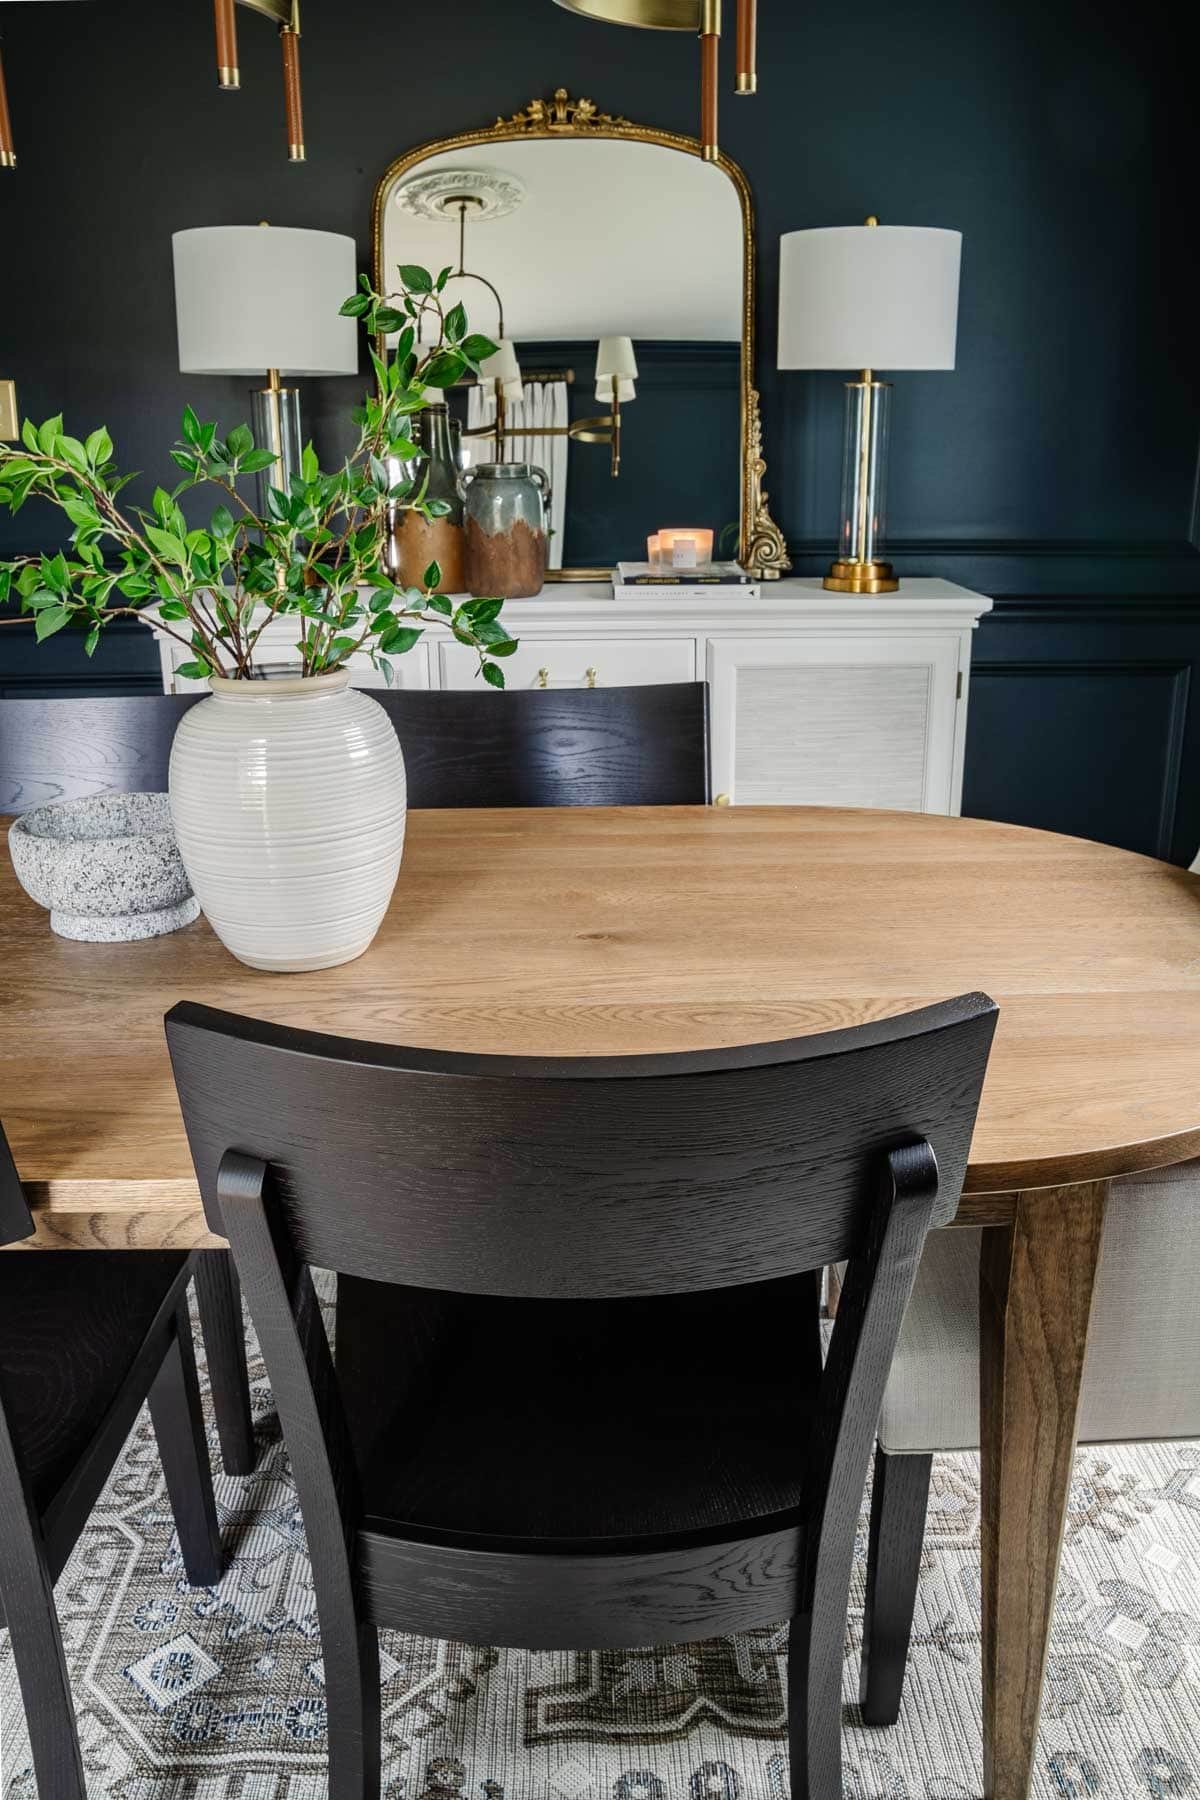 classic modern dining room with midcentury modern table, black chairs, and French mirror